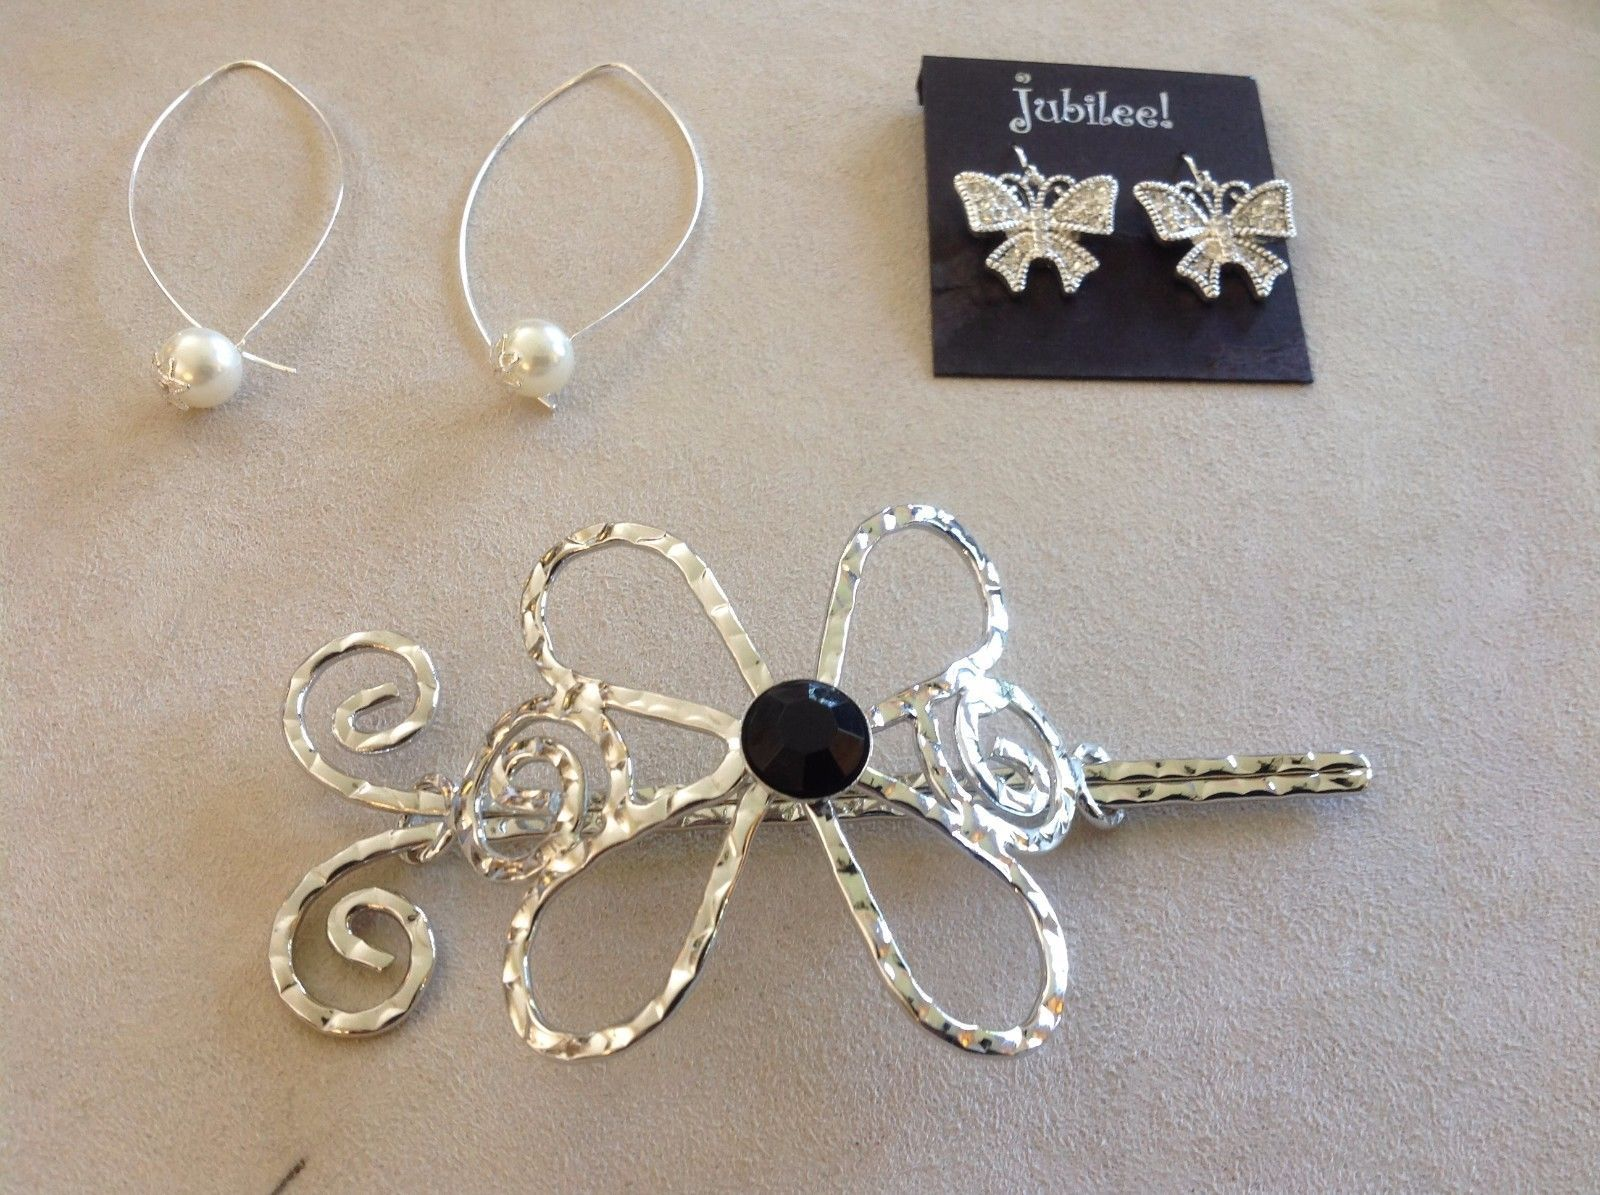 Set Collection of Silver Toned Jubilee! Earrings Hoops Oblong Simulated Pearls